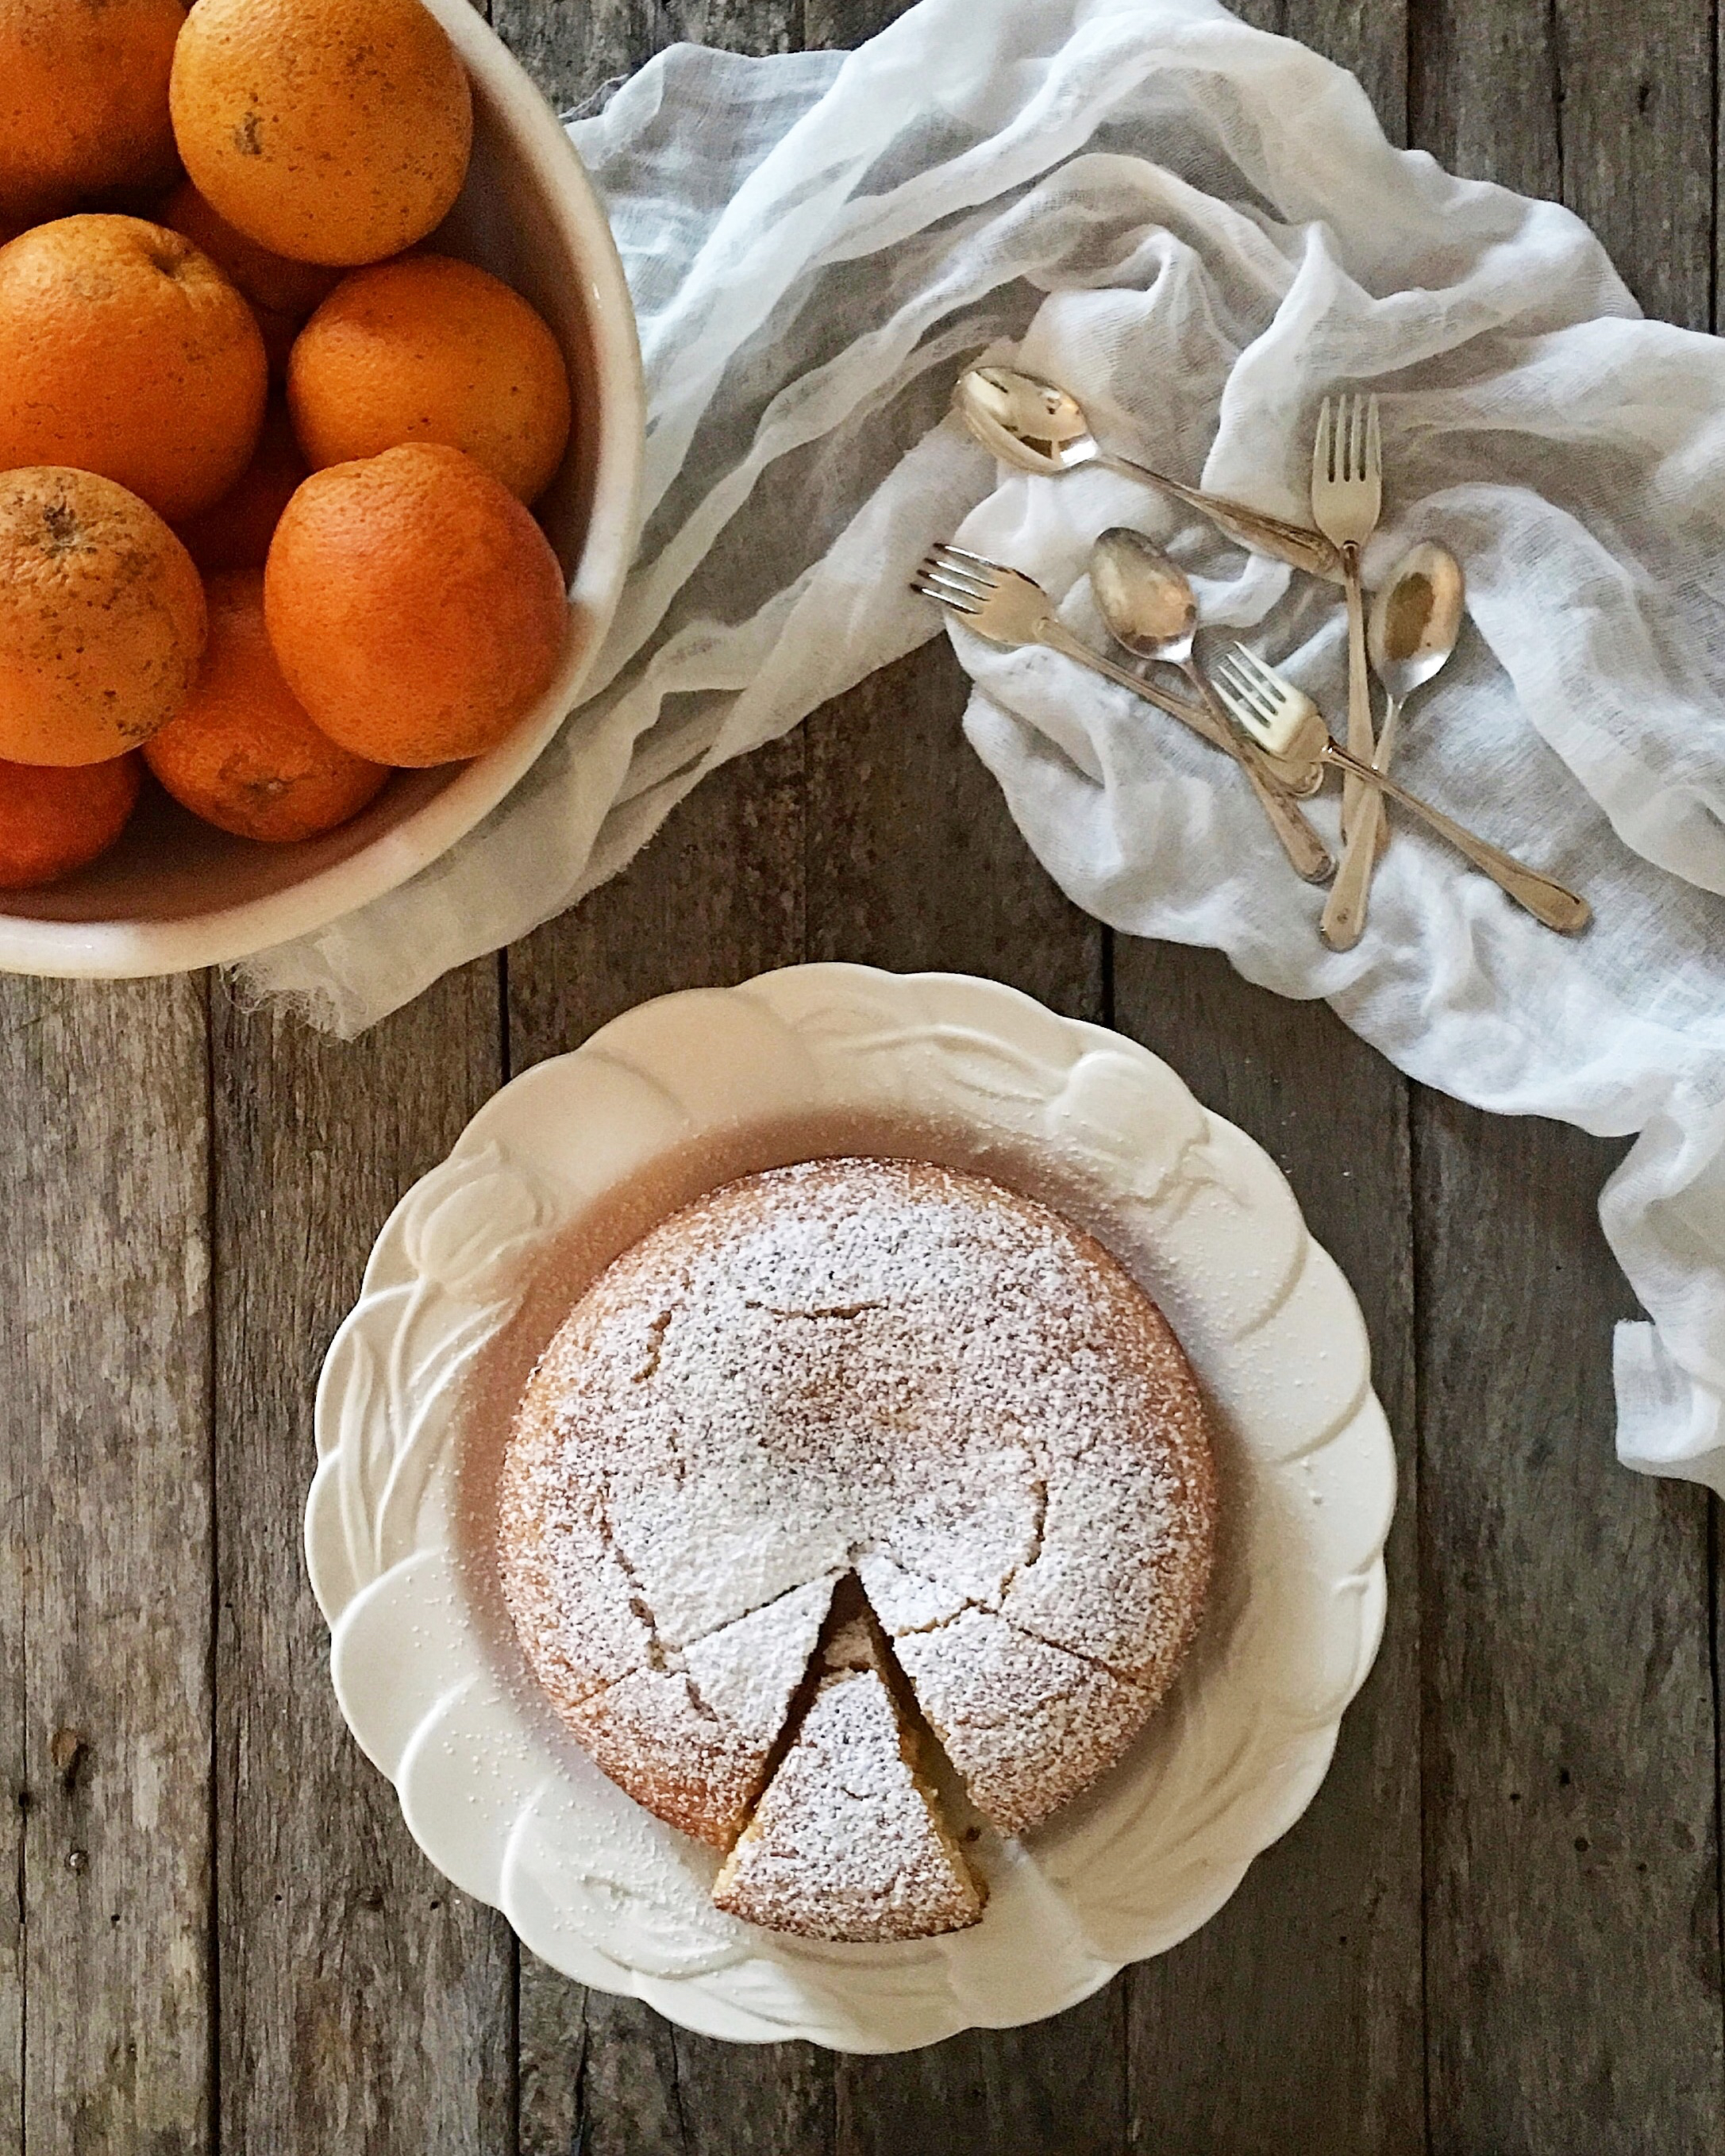 - Orange cake is a favourite in my house- especially at this time of the year when our local winter citrus crops are falling off the trees and in plentiful supply. I have several orange cake recipes but this one is my